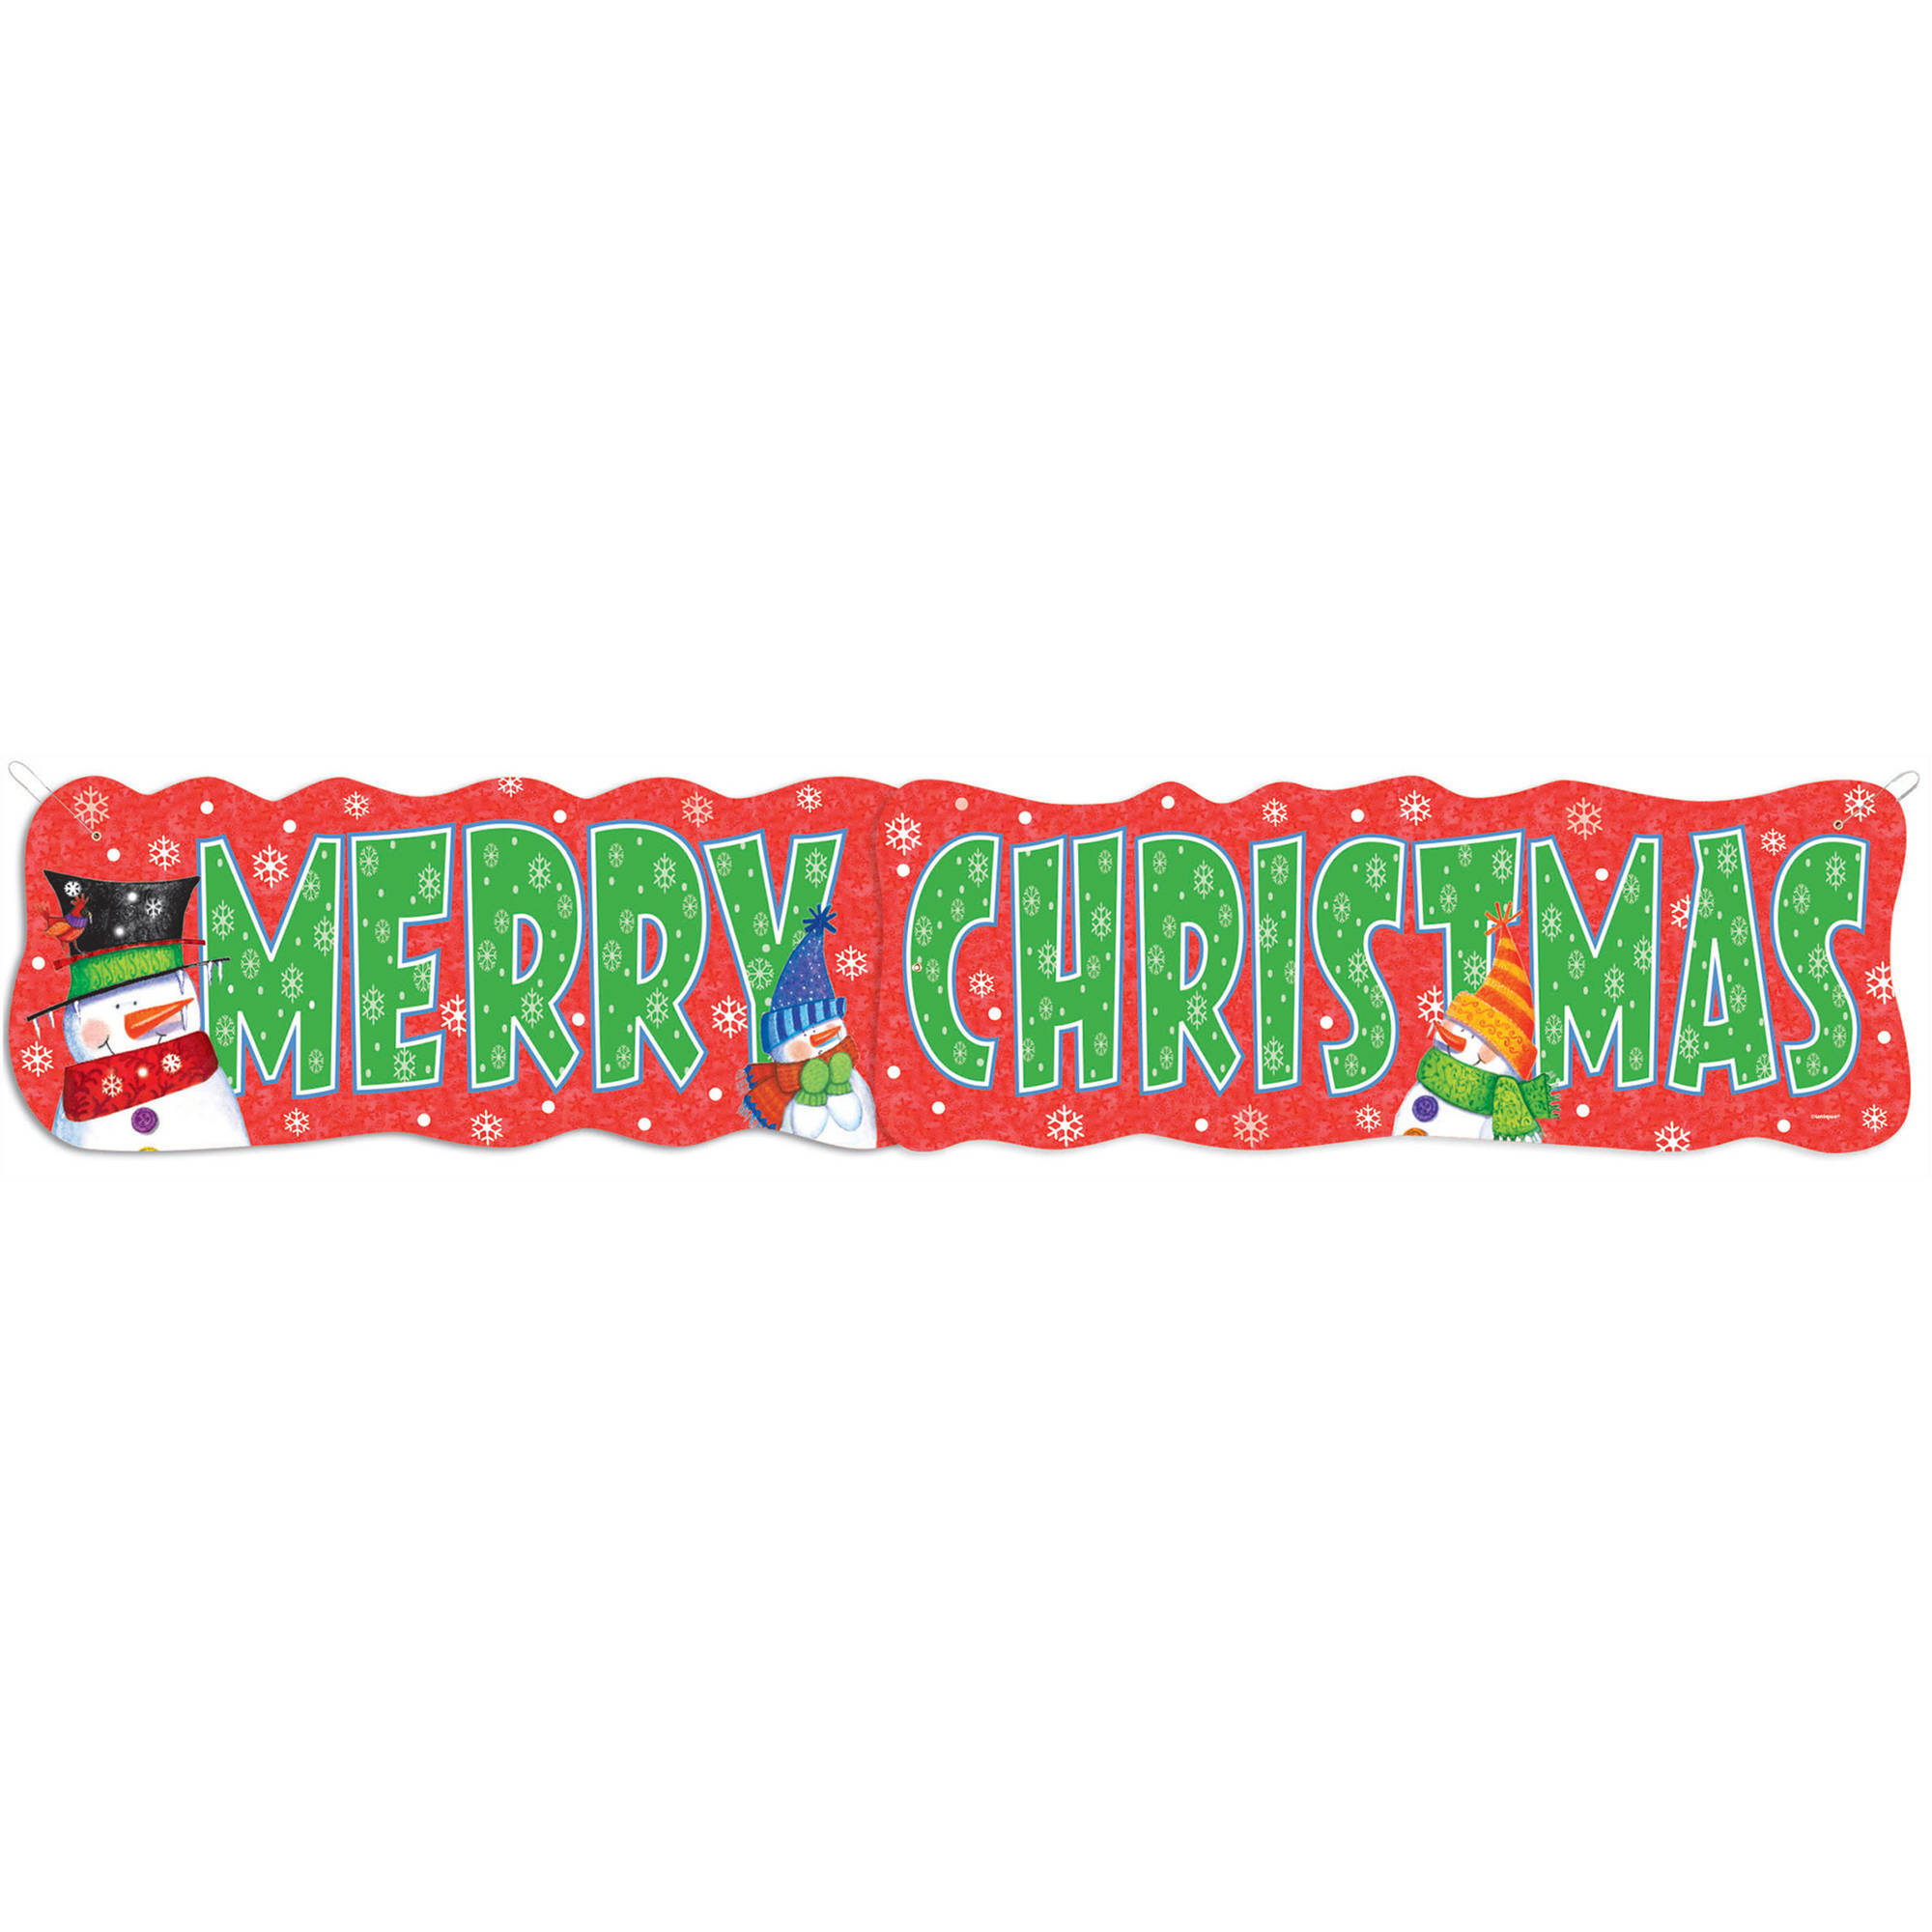 Snowman Buddies Merry Christmas Jointed Banner